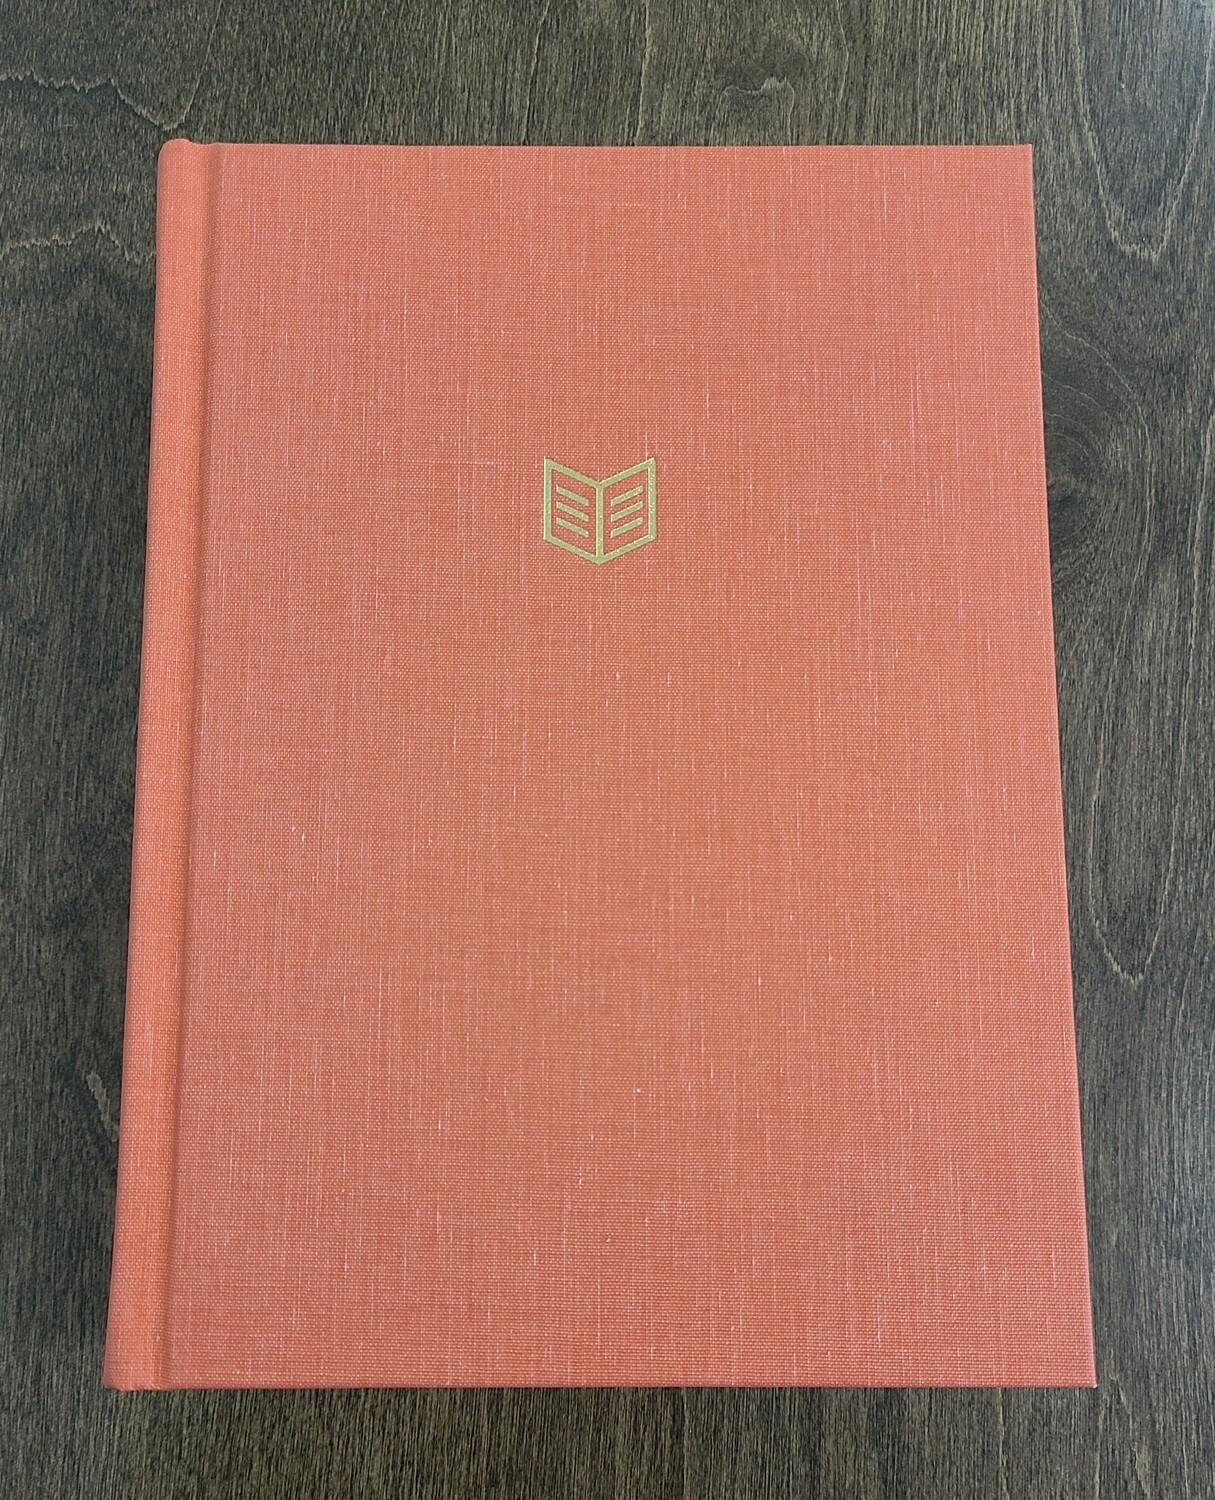 CSB She Reads Truth Indexed Bible - Poppy Linen Hardback